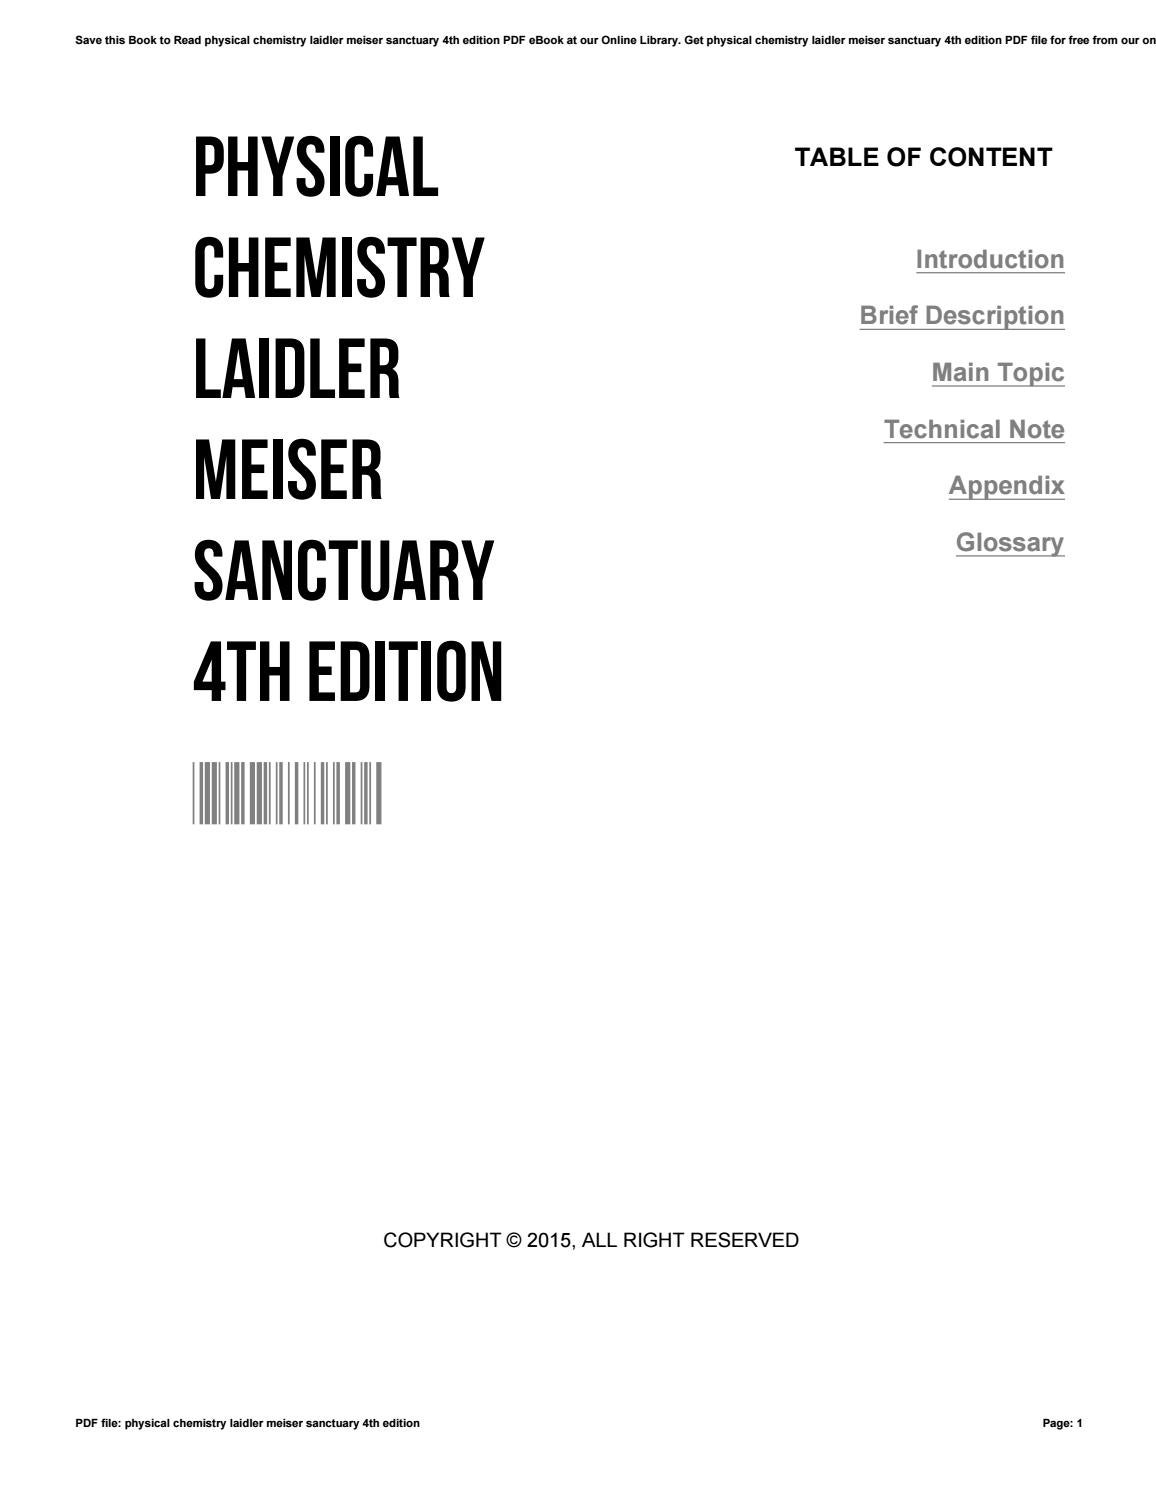 physical chemistry laidler 4th edition solution manual